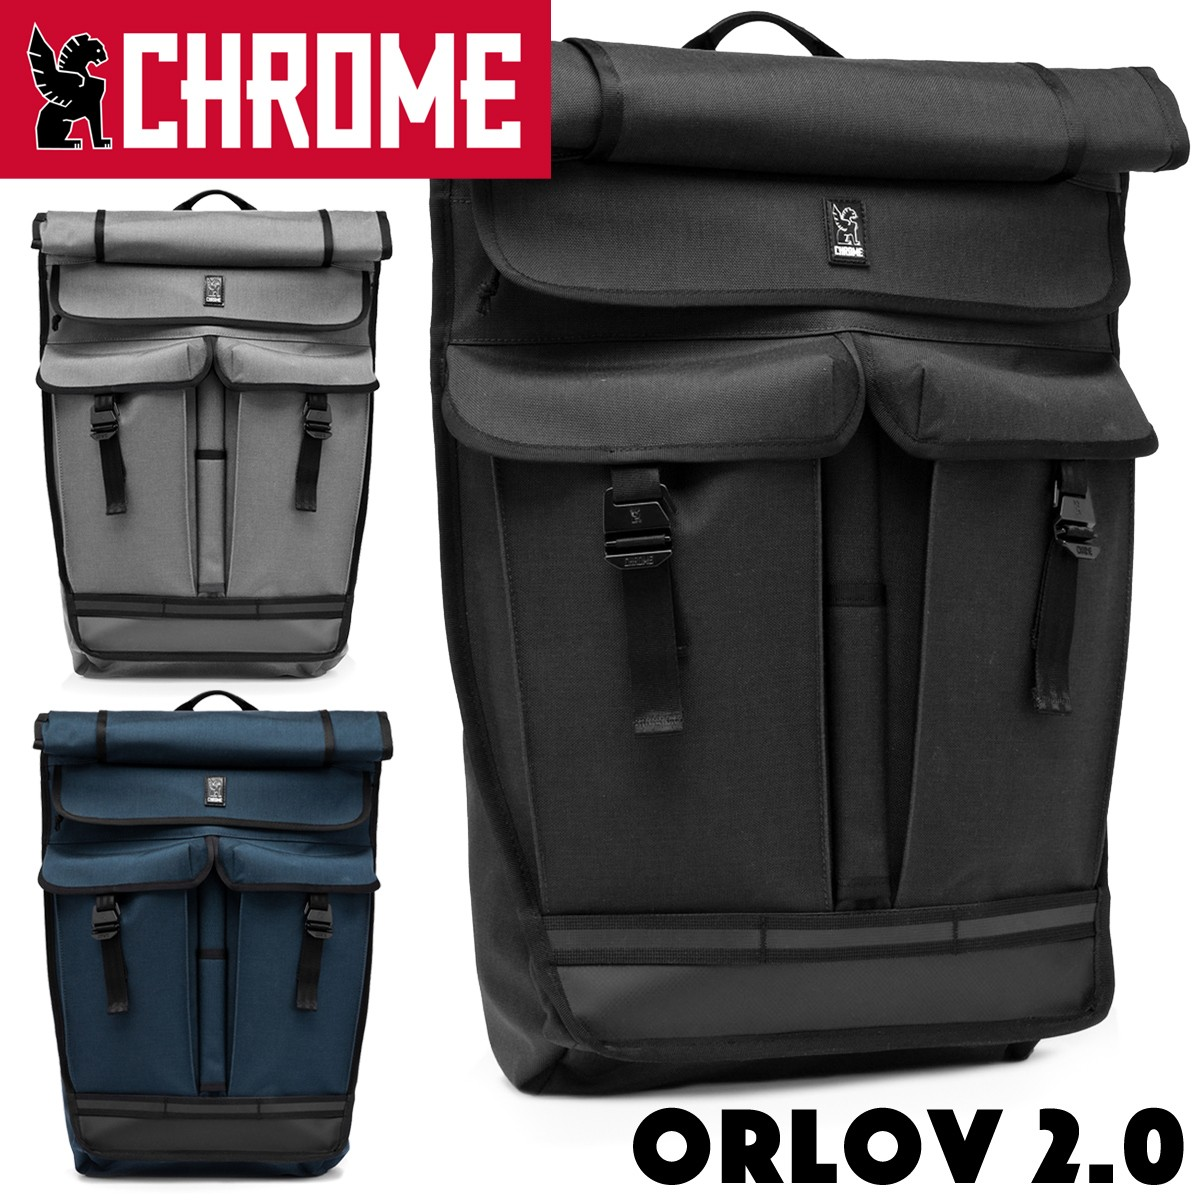 CHROME ORLOV 2.0